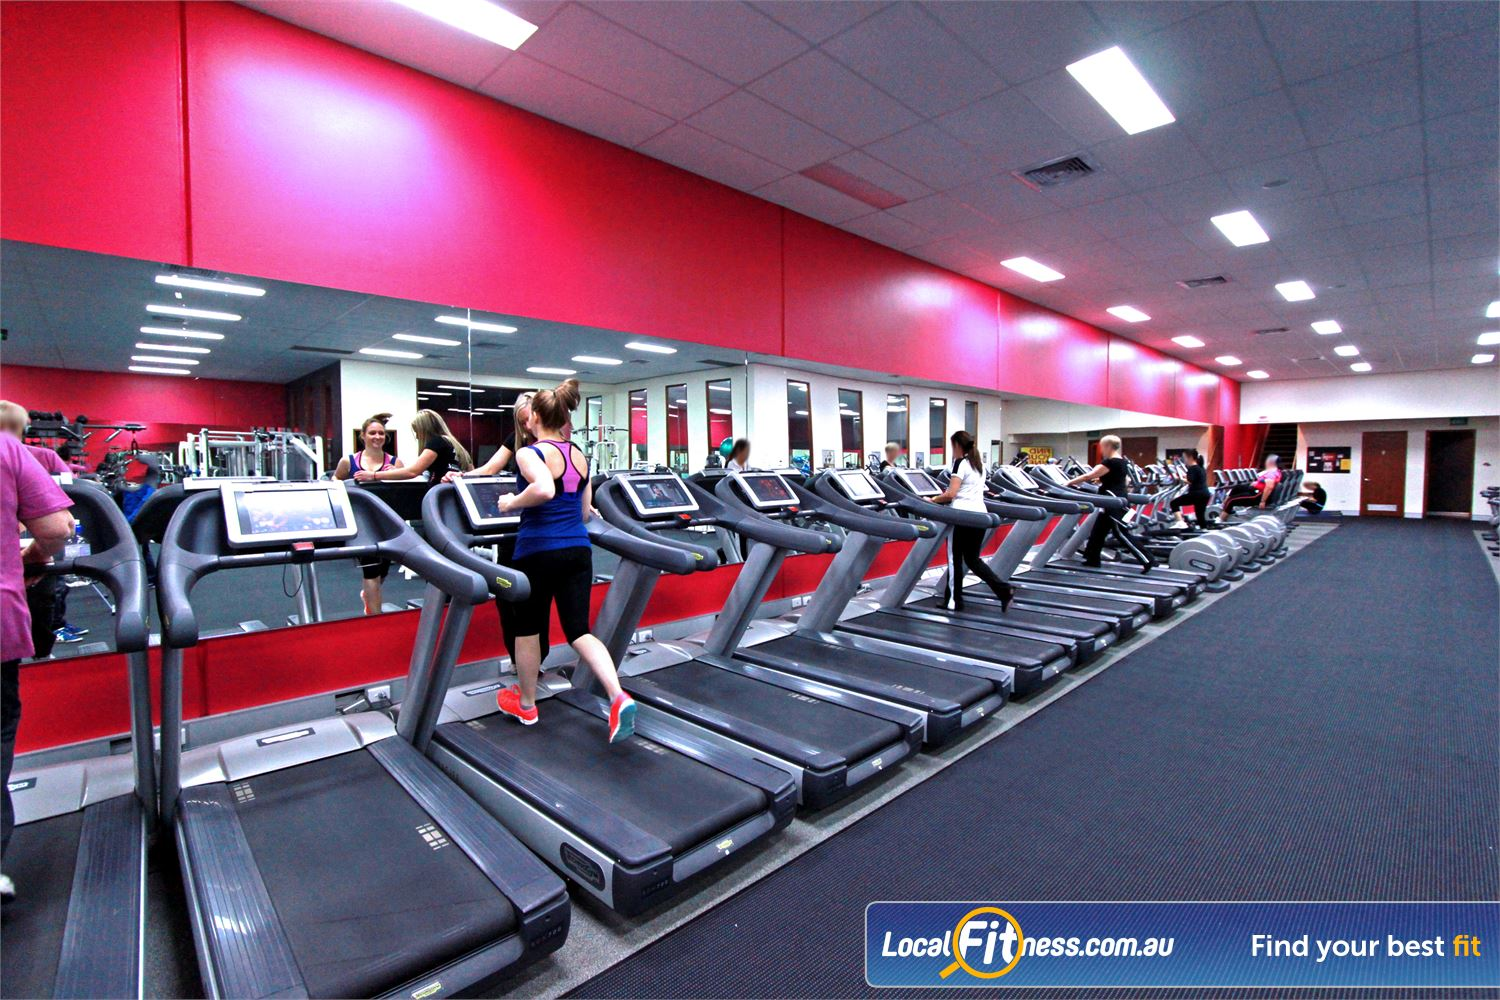 Fernwood Fitness Ferntree Gully Our women's Ferntree Gully gym features state of the art cardio equipment.